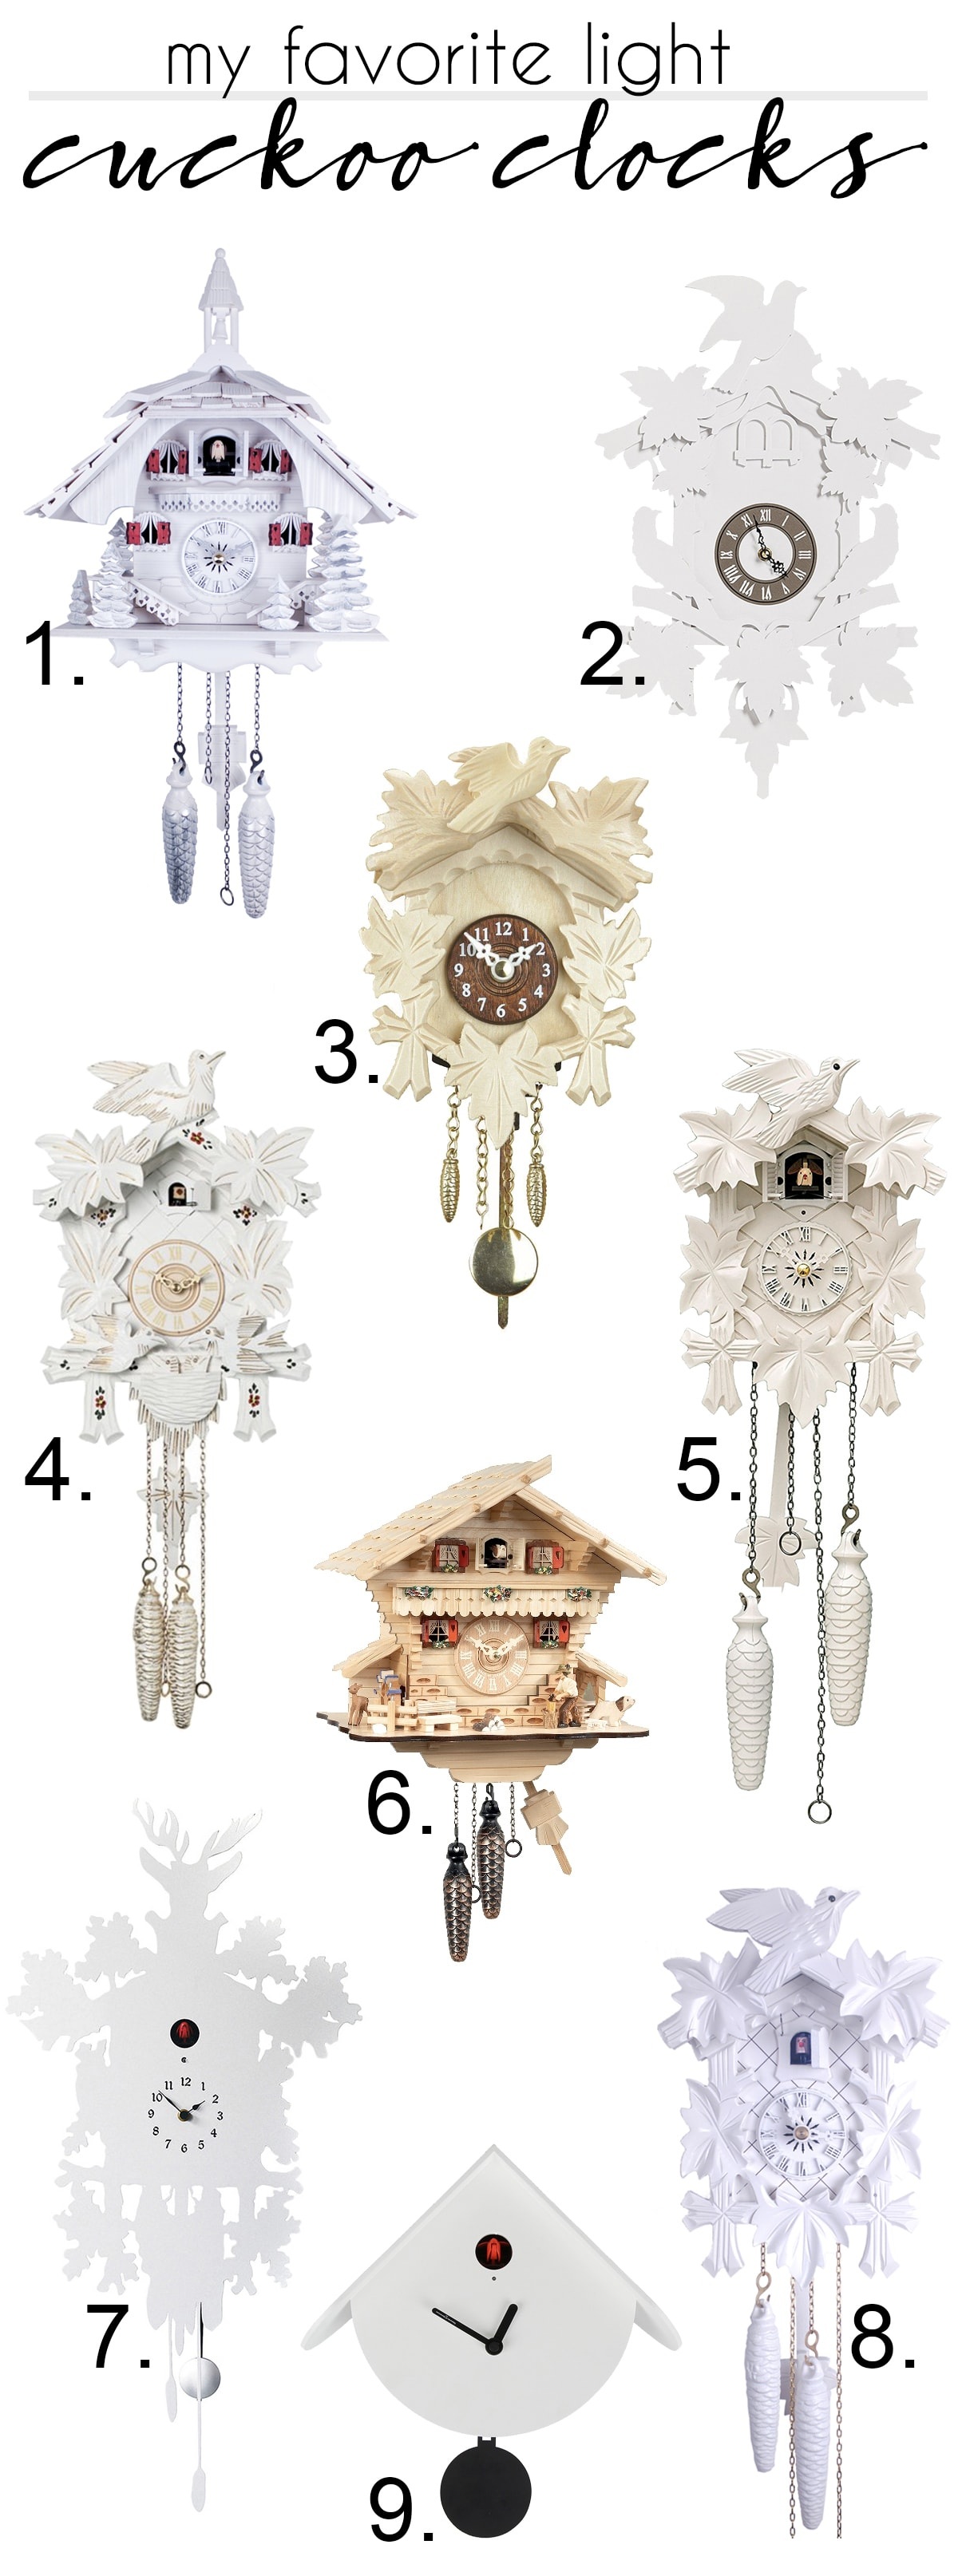 my favorite light colored cuckoo clocks